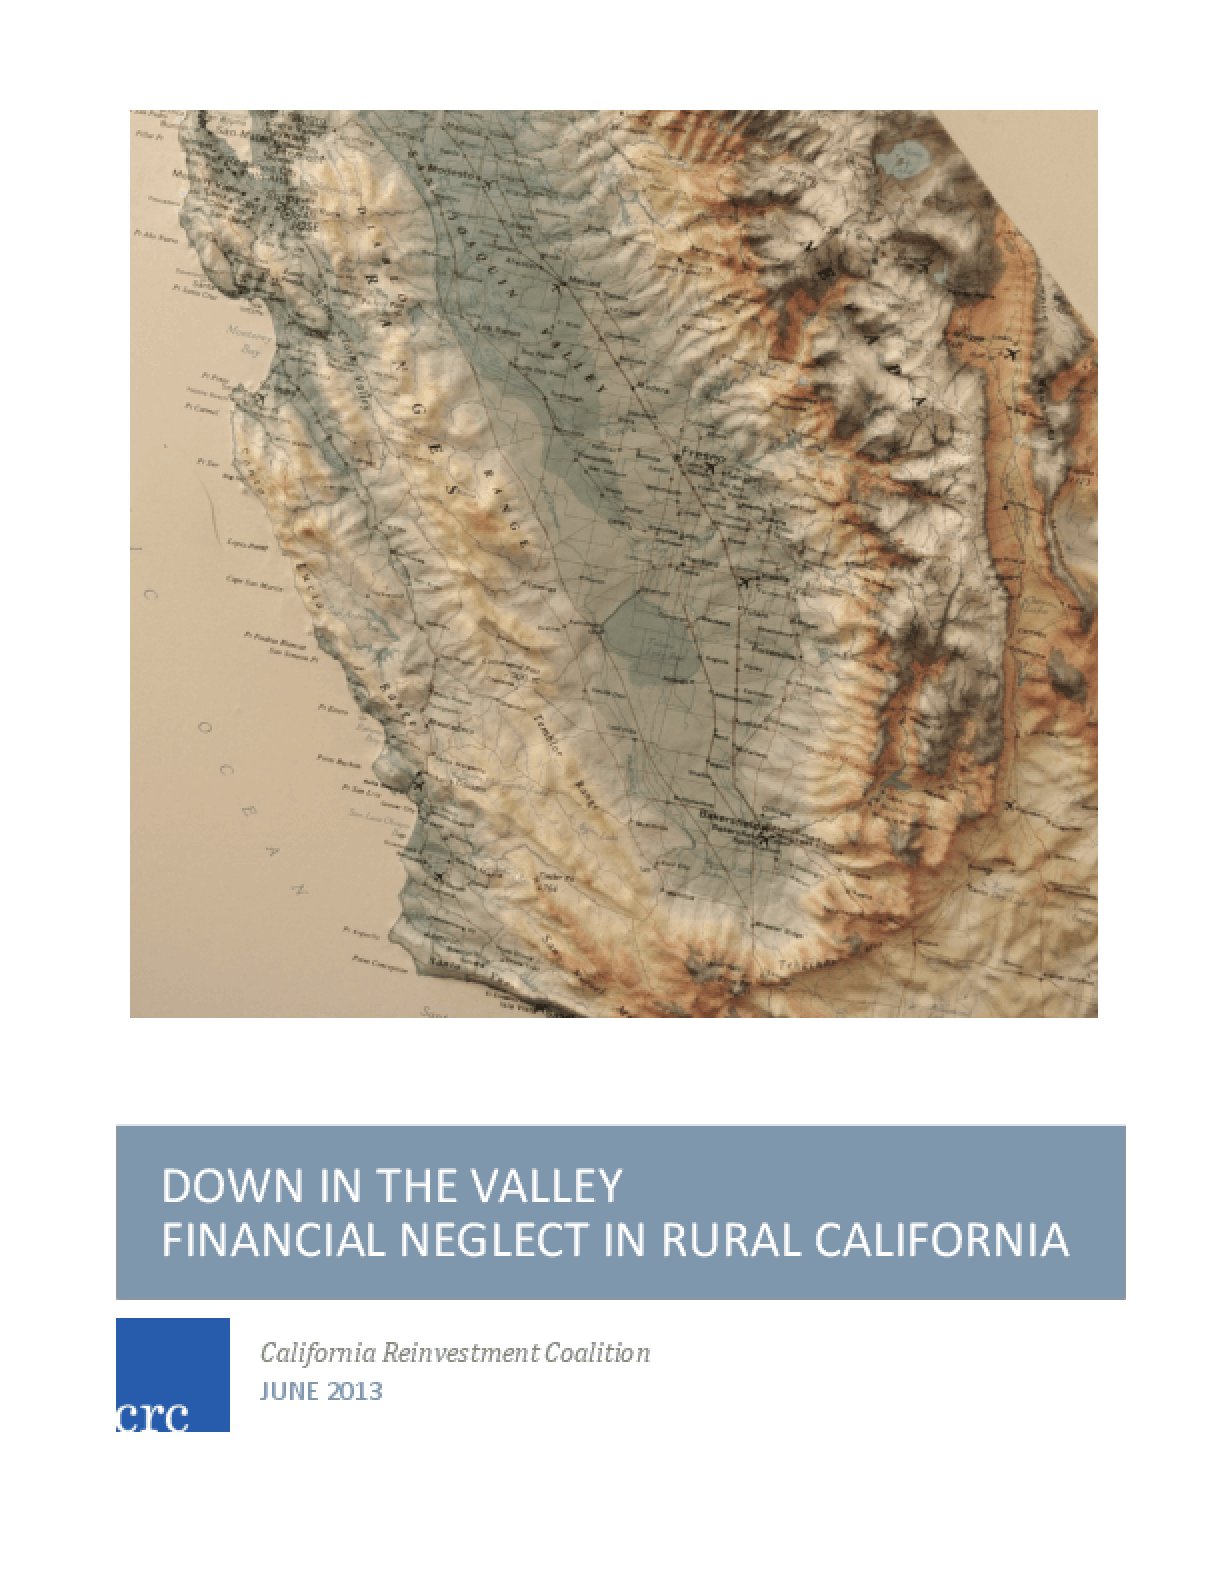 Down in the Valley: Financial Neglect in Rural California